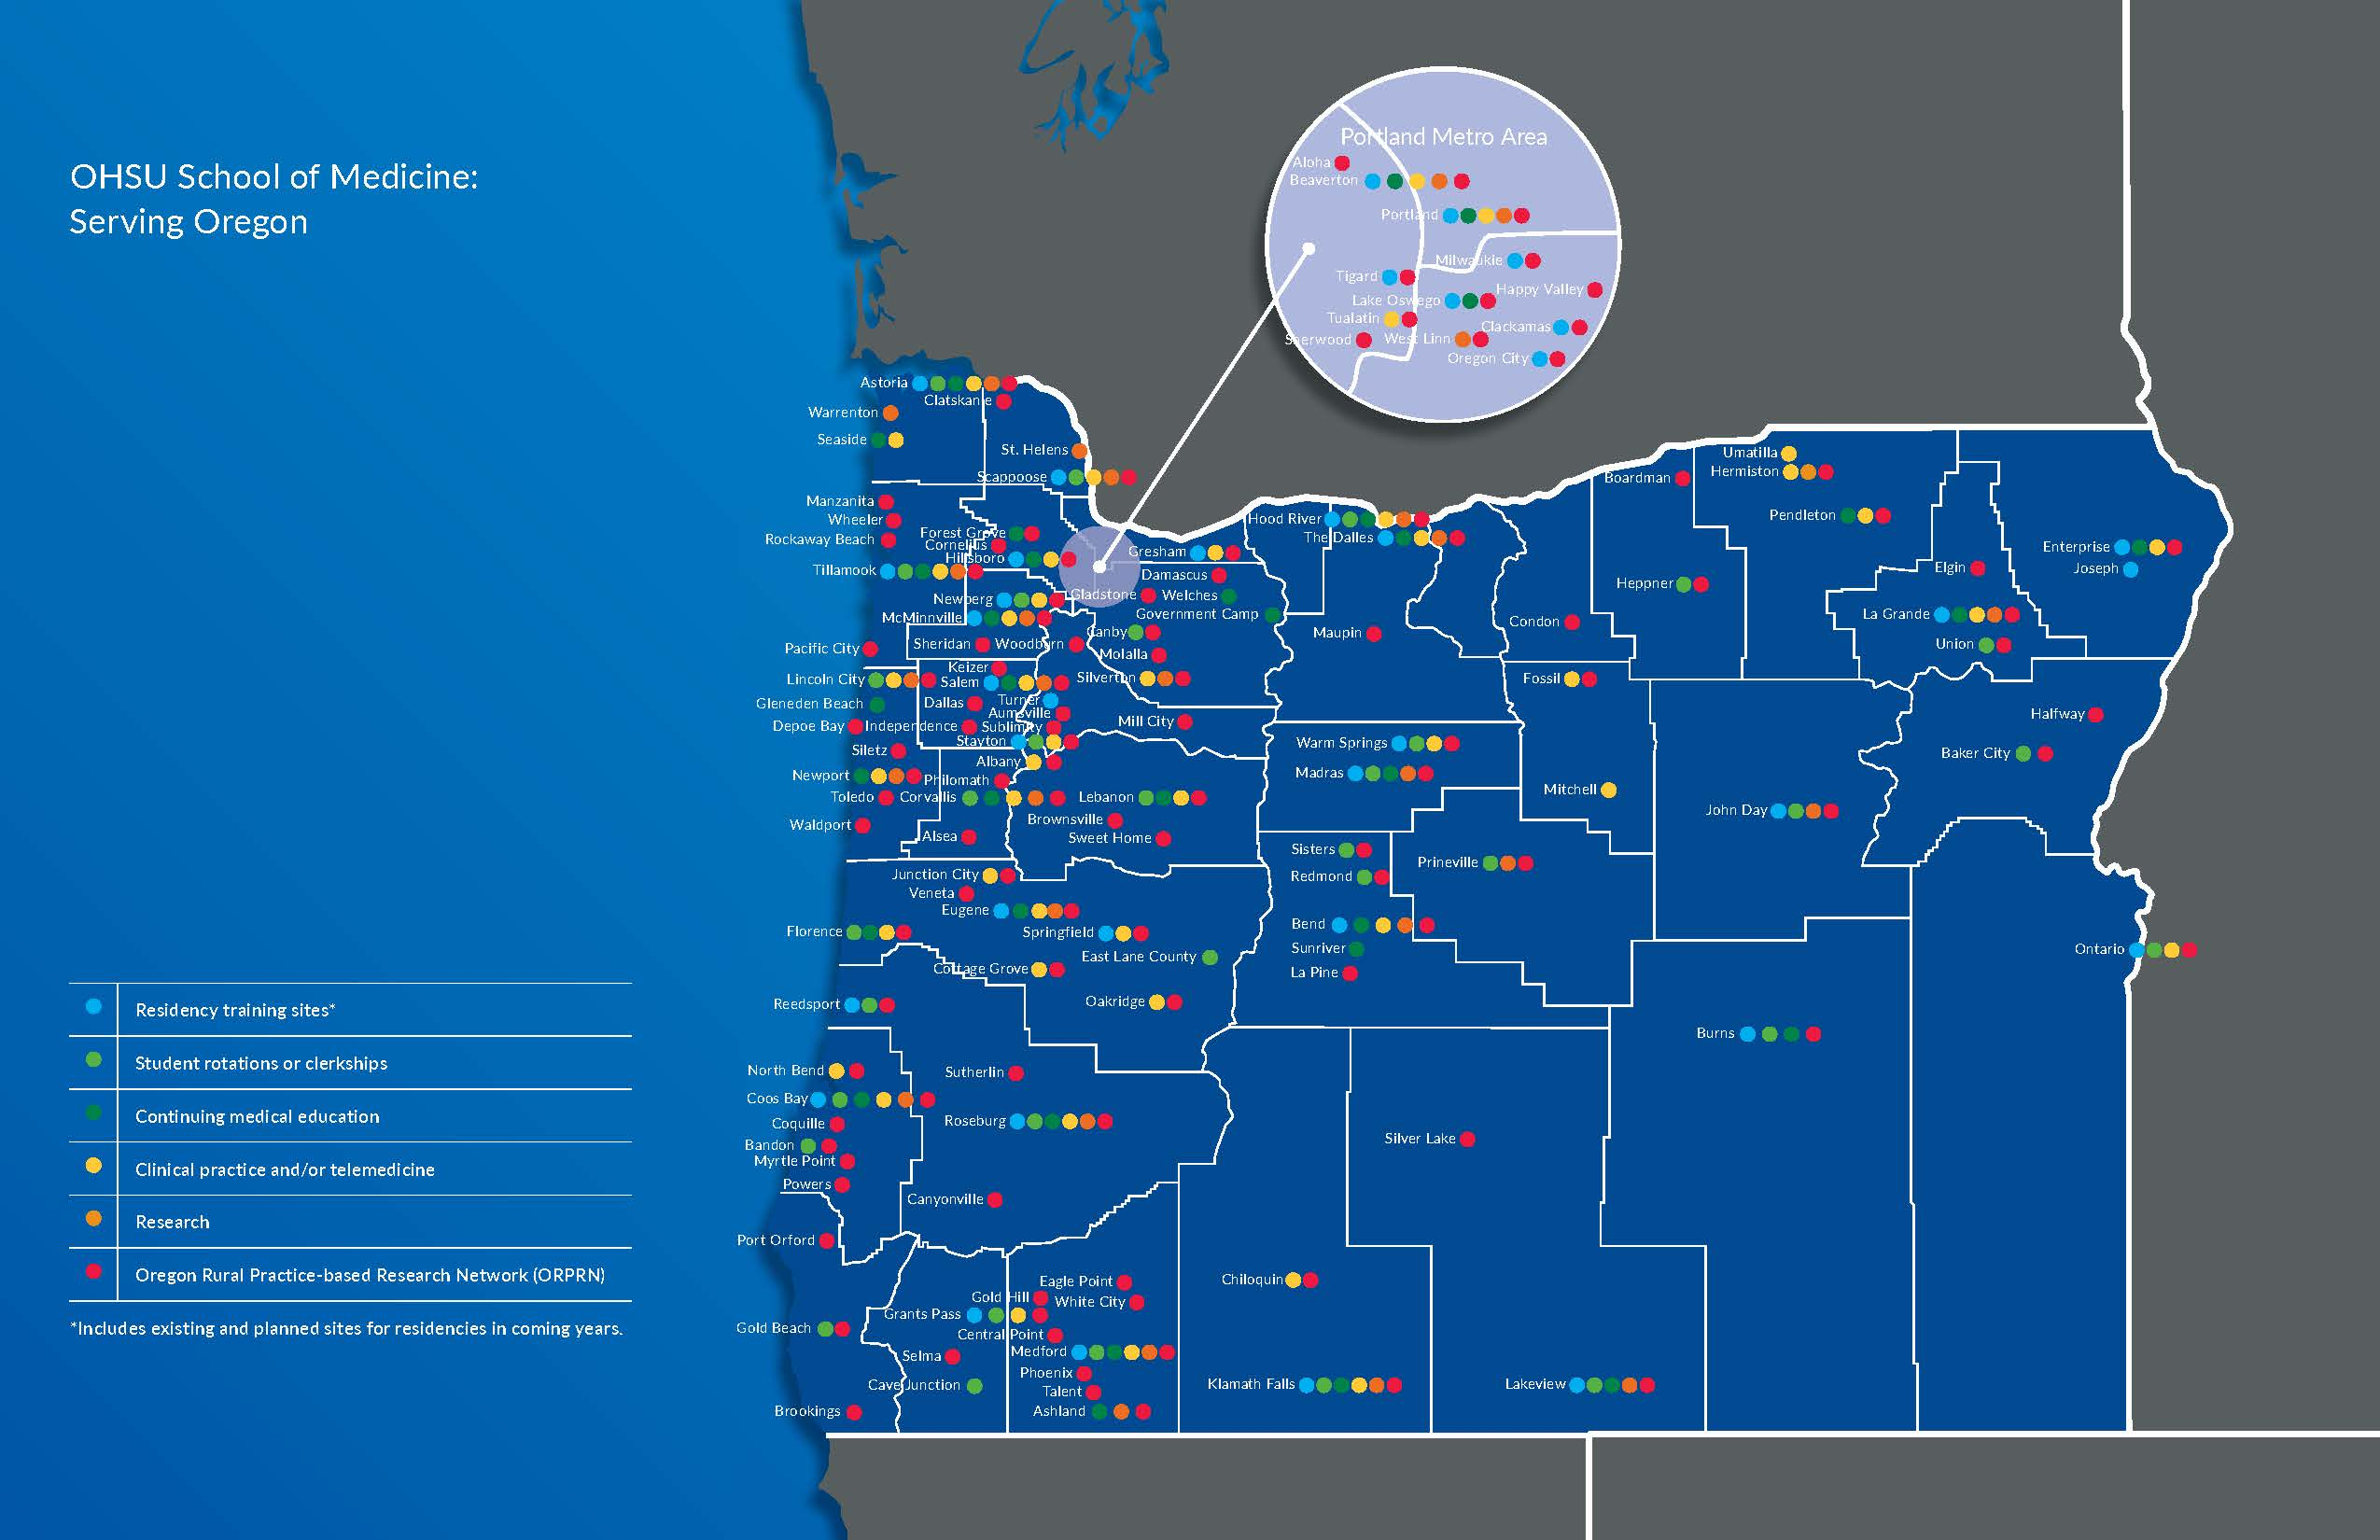 School of Medicine - statewide reach in serving all Oregonians, updated February 2019